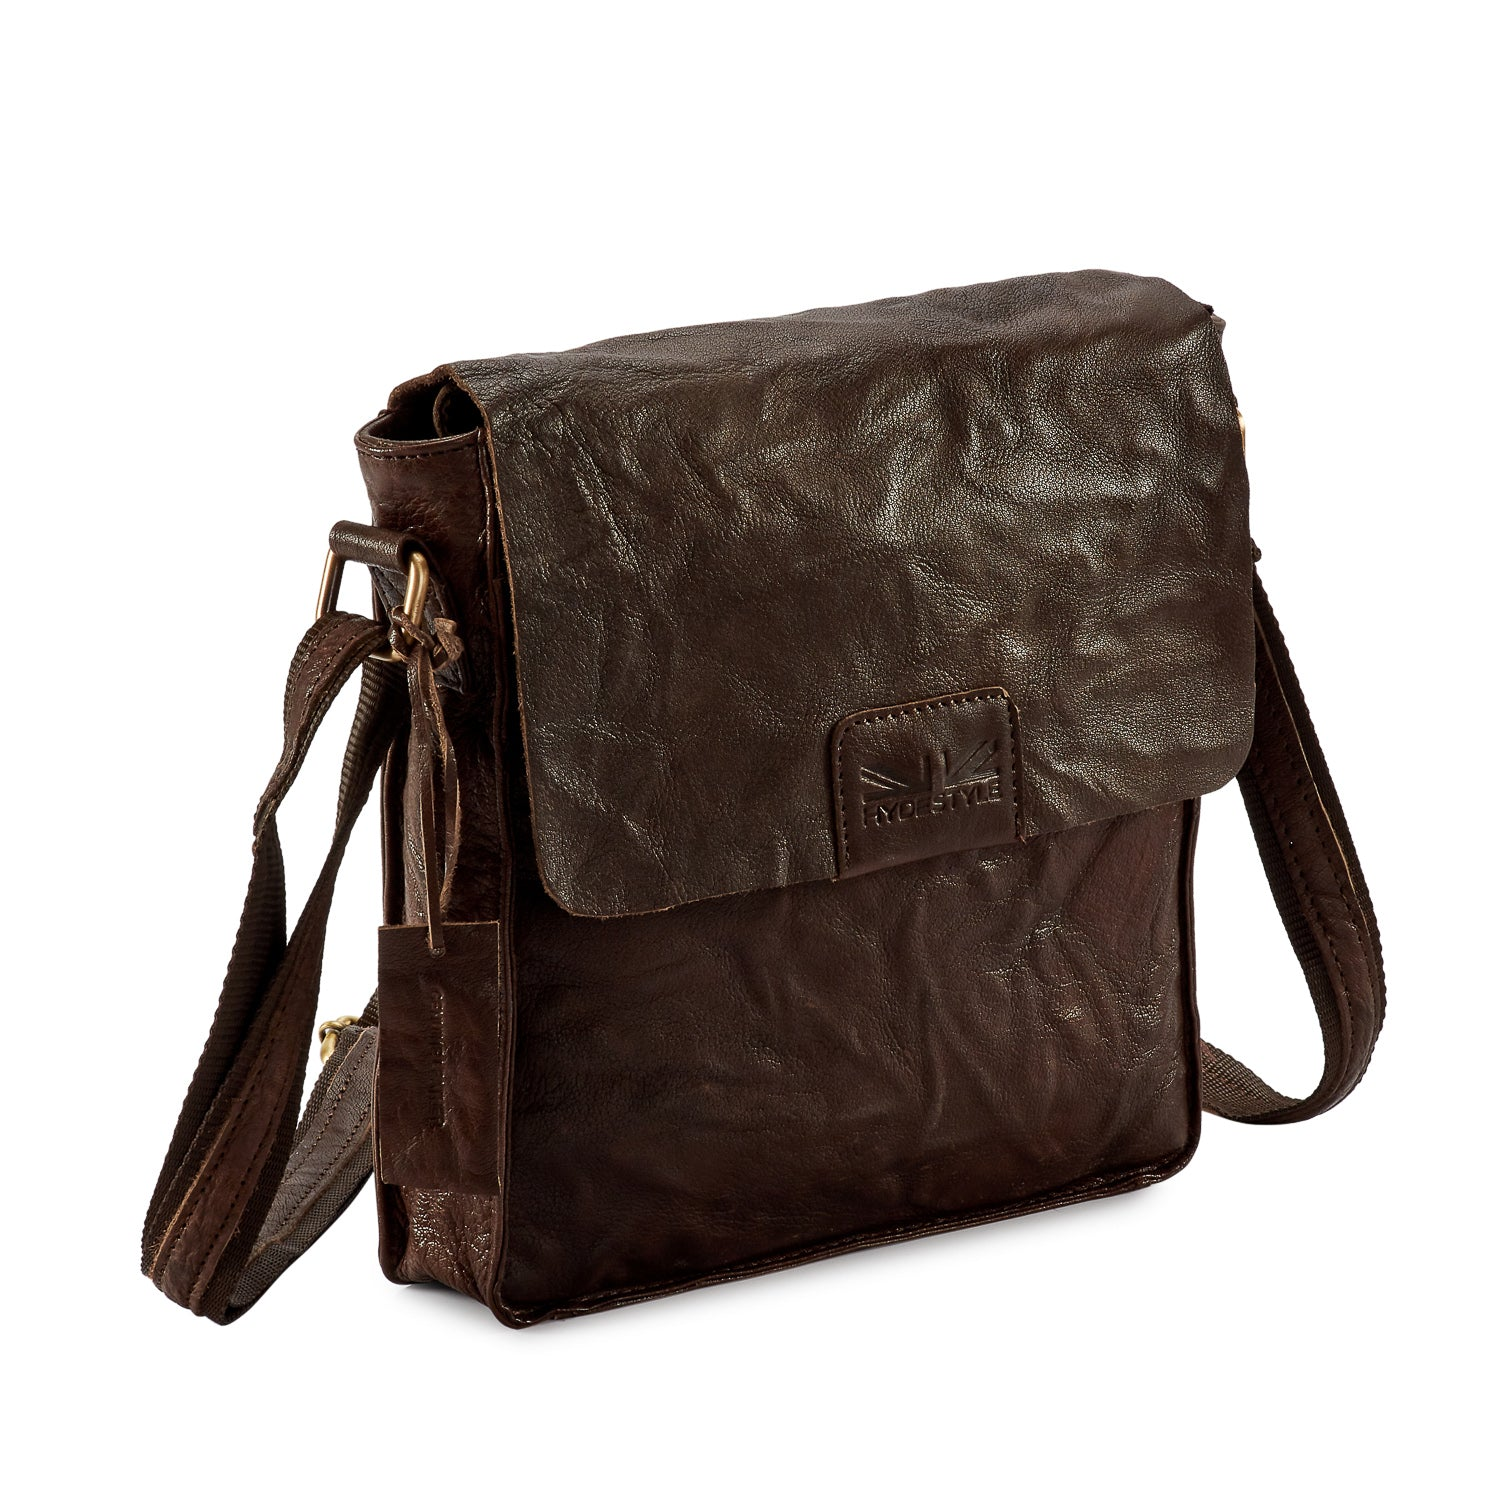 24d1273a98 Pello Brown washed leather man-bag  UM101 - Small